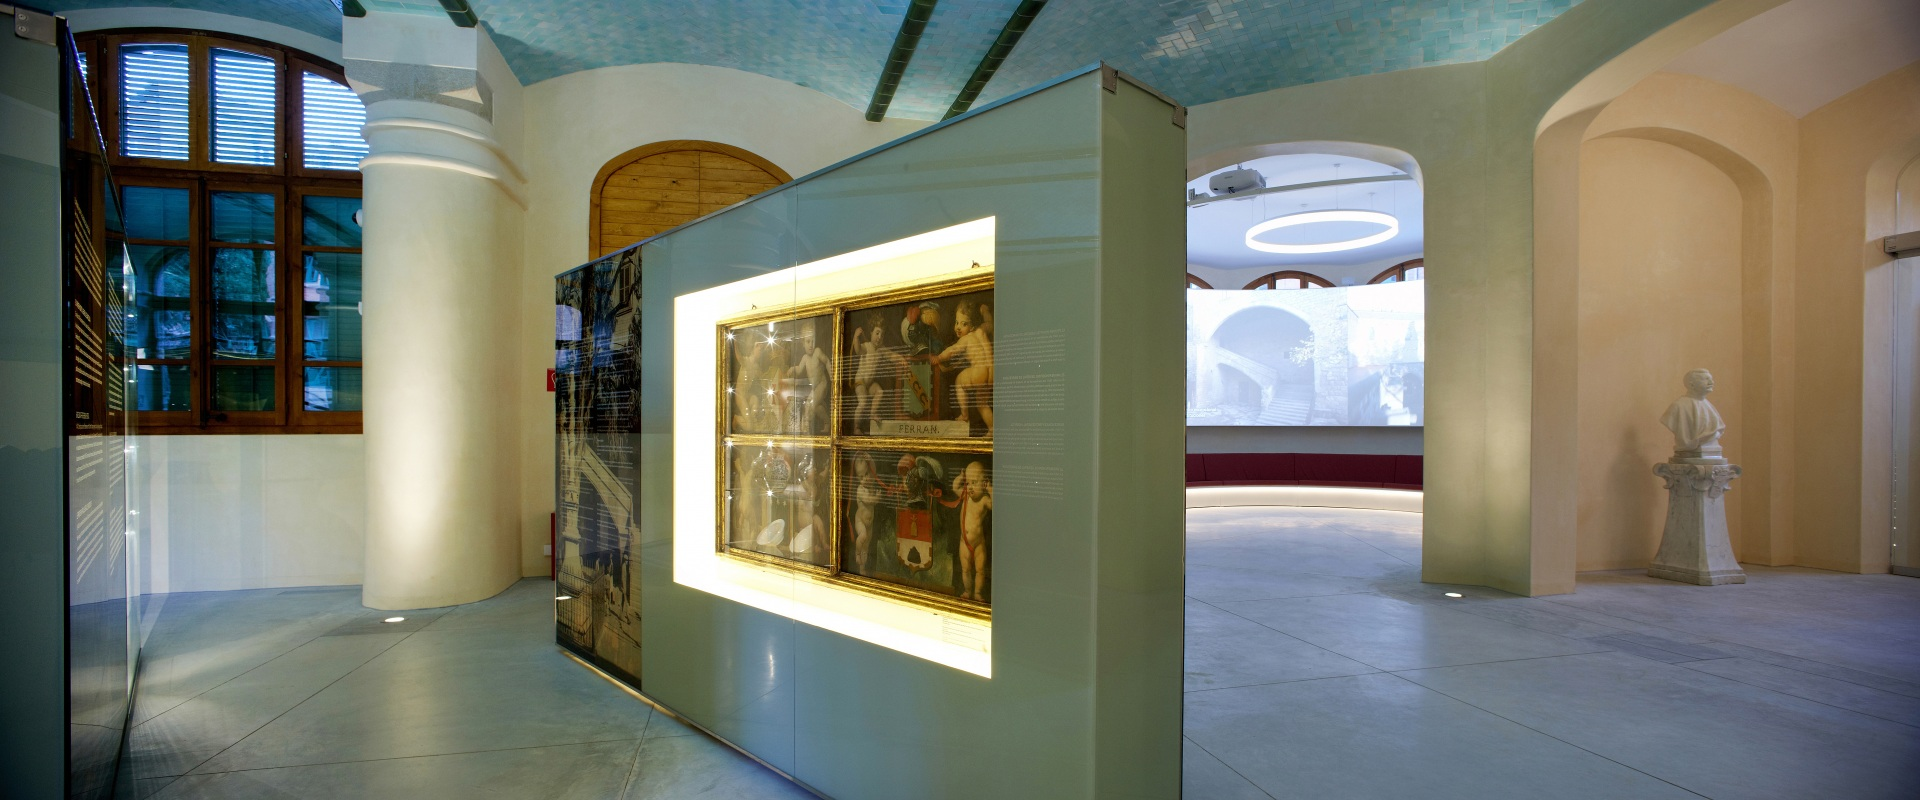 Hospital of the Santa Creu i Sant Pau. Exhibition on the history of the hospital. Panel with classical paintings. On the background, bust and projection 360º.